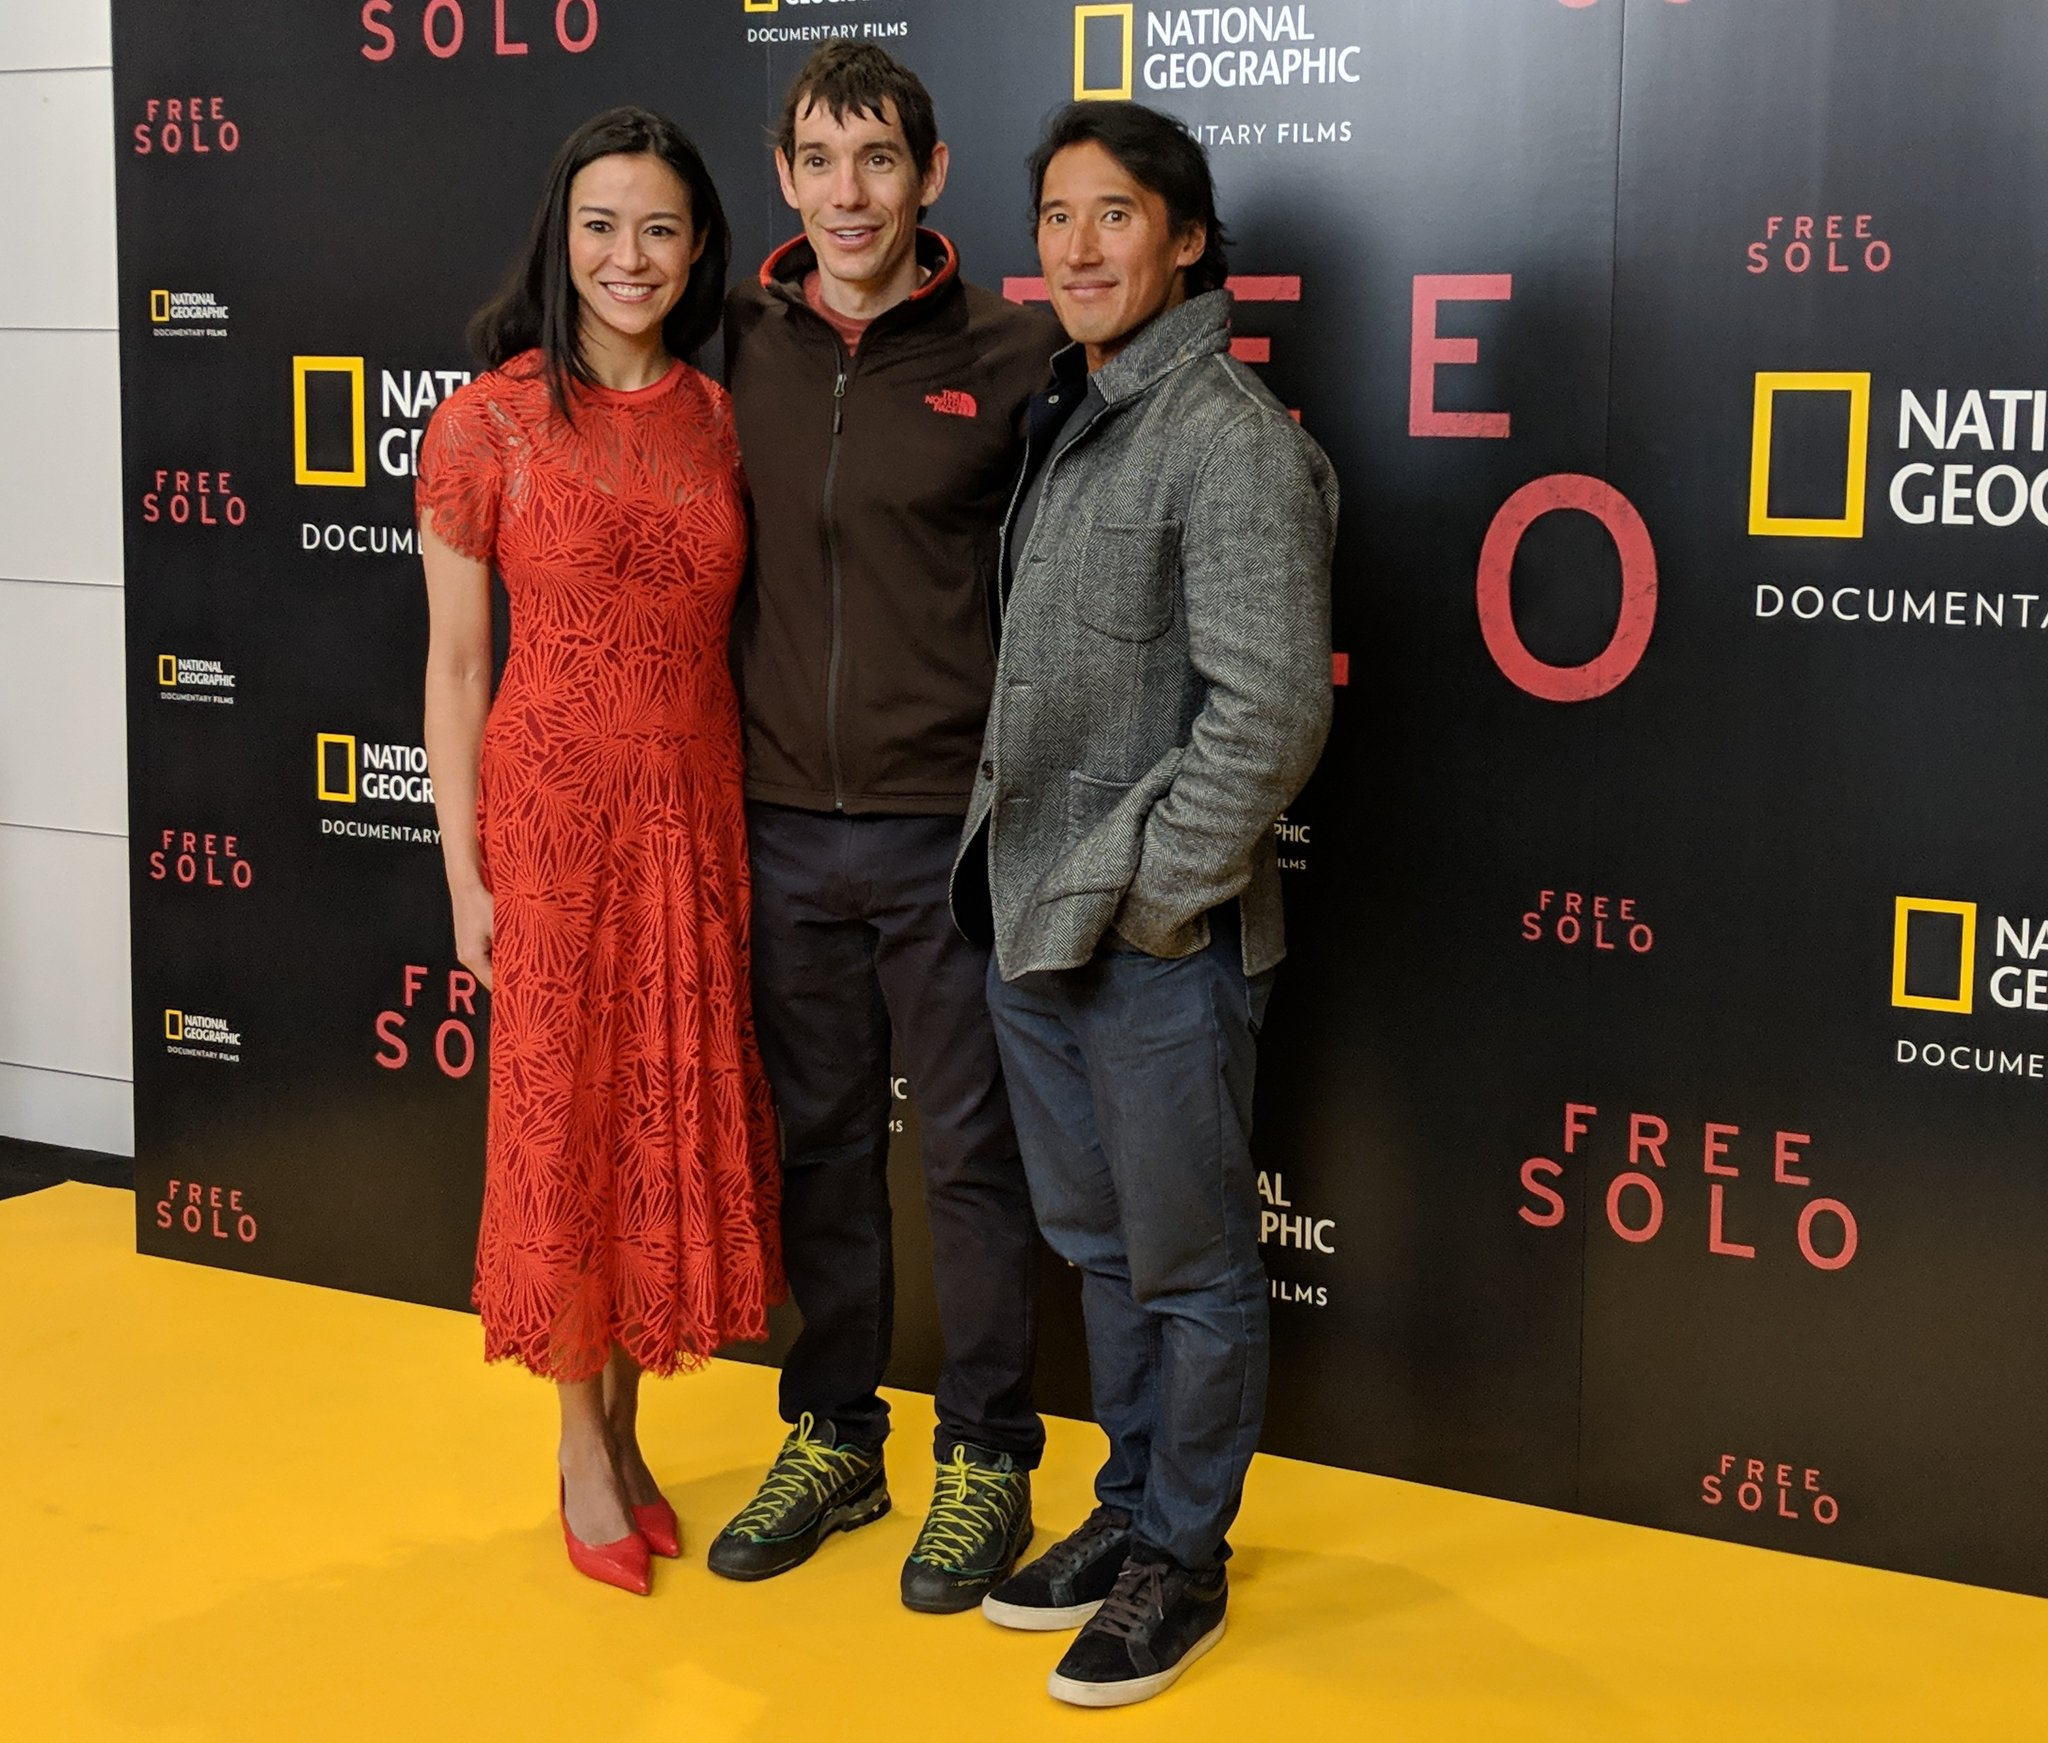 Climber Alex Honnold with filmmakers Chai Vasarhelyi and Jimmy Chin.